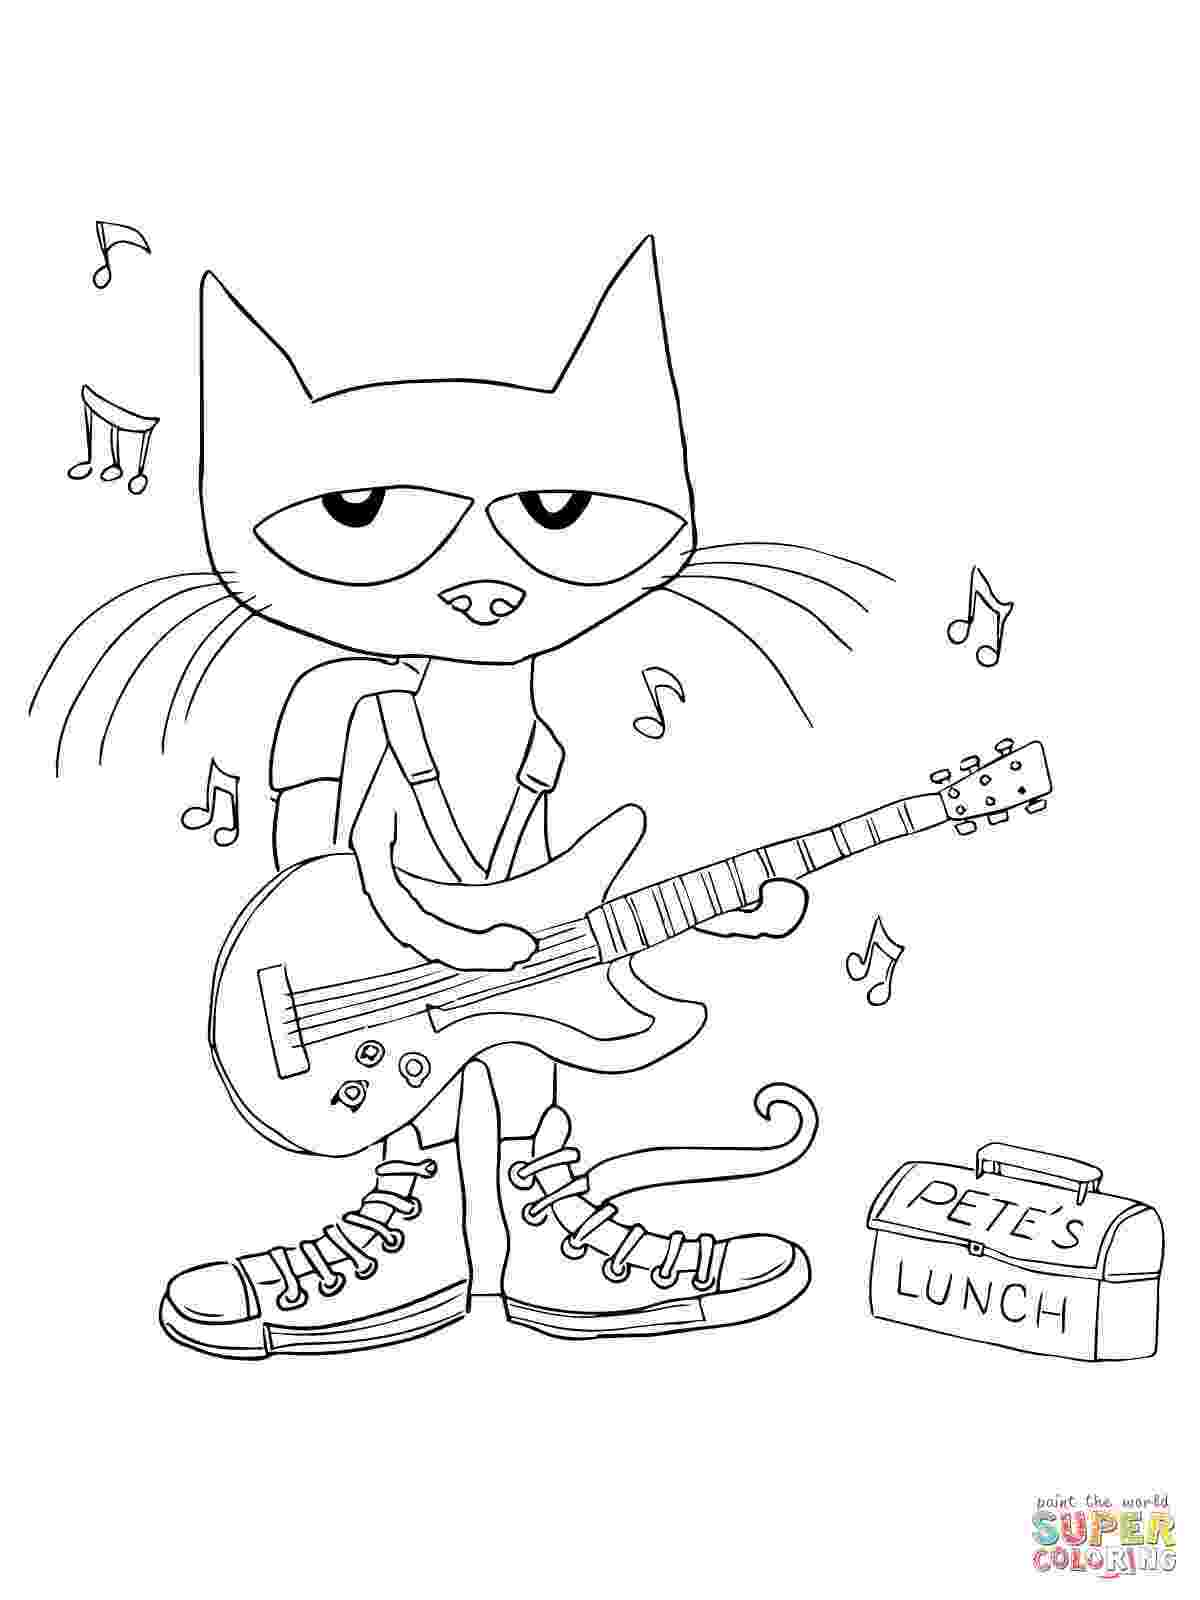 sylvester and the magic pebble coloring page sylvester and the magic pebble coloring pages the coloring pebble page sylvester and magic